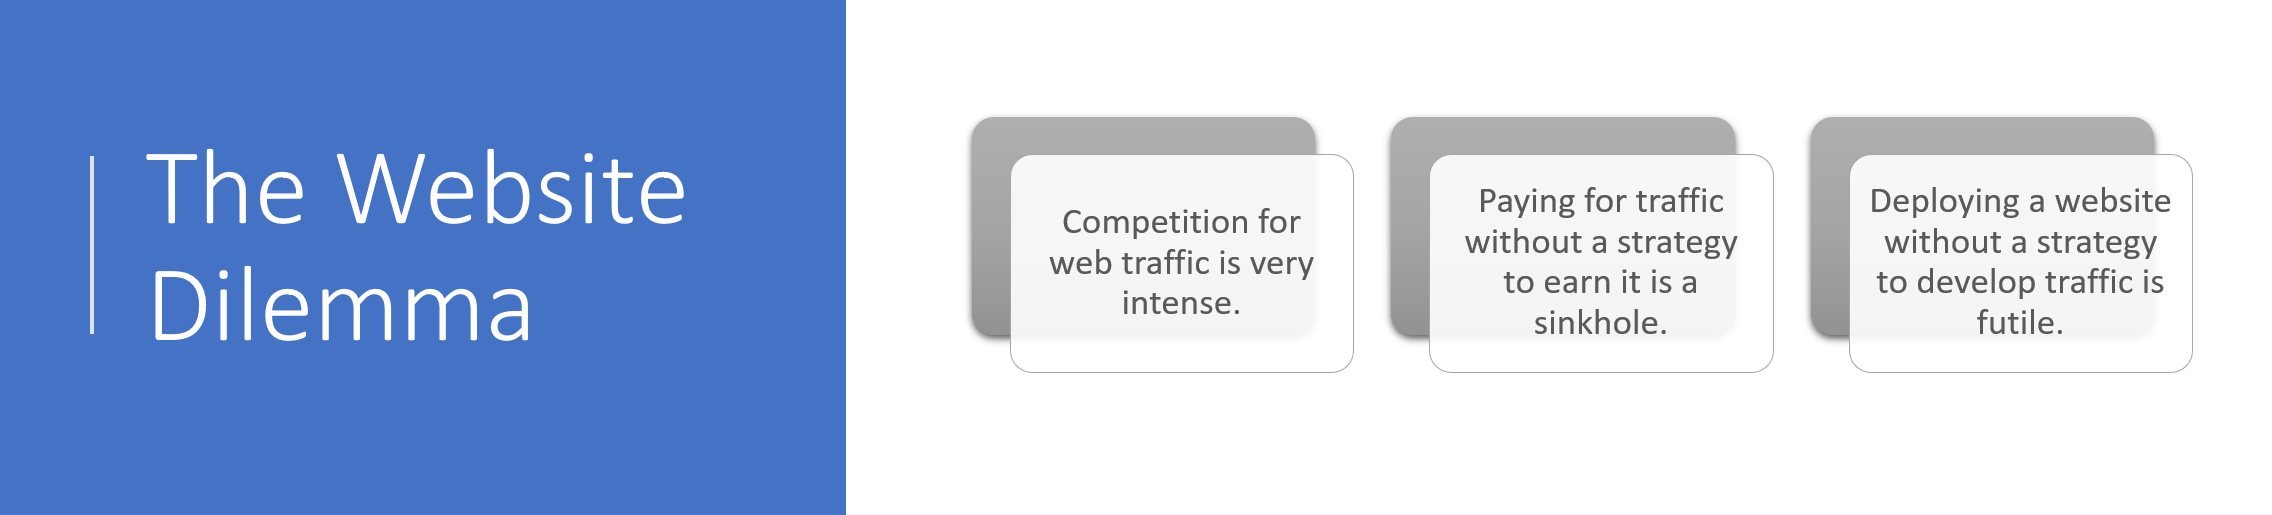 The Website Dilemma.png